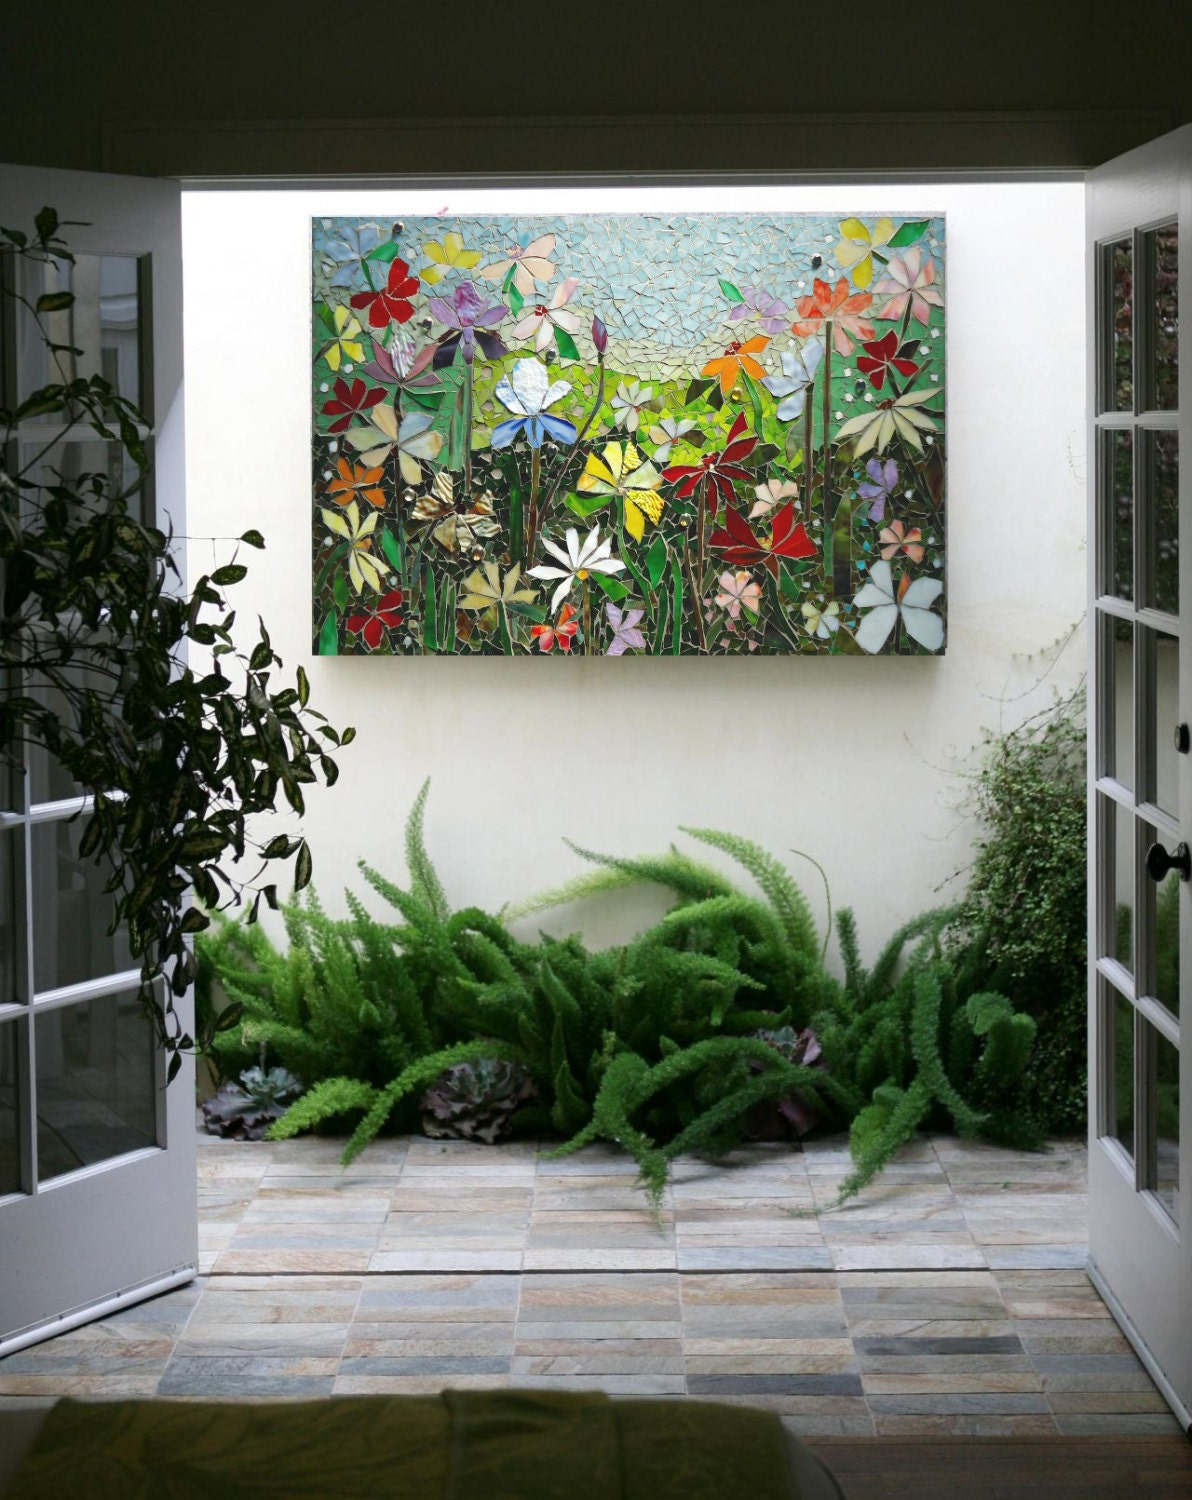 Mosaic wall art stained glass wall decor floral garden indoor for Outdoor decorative items